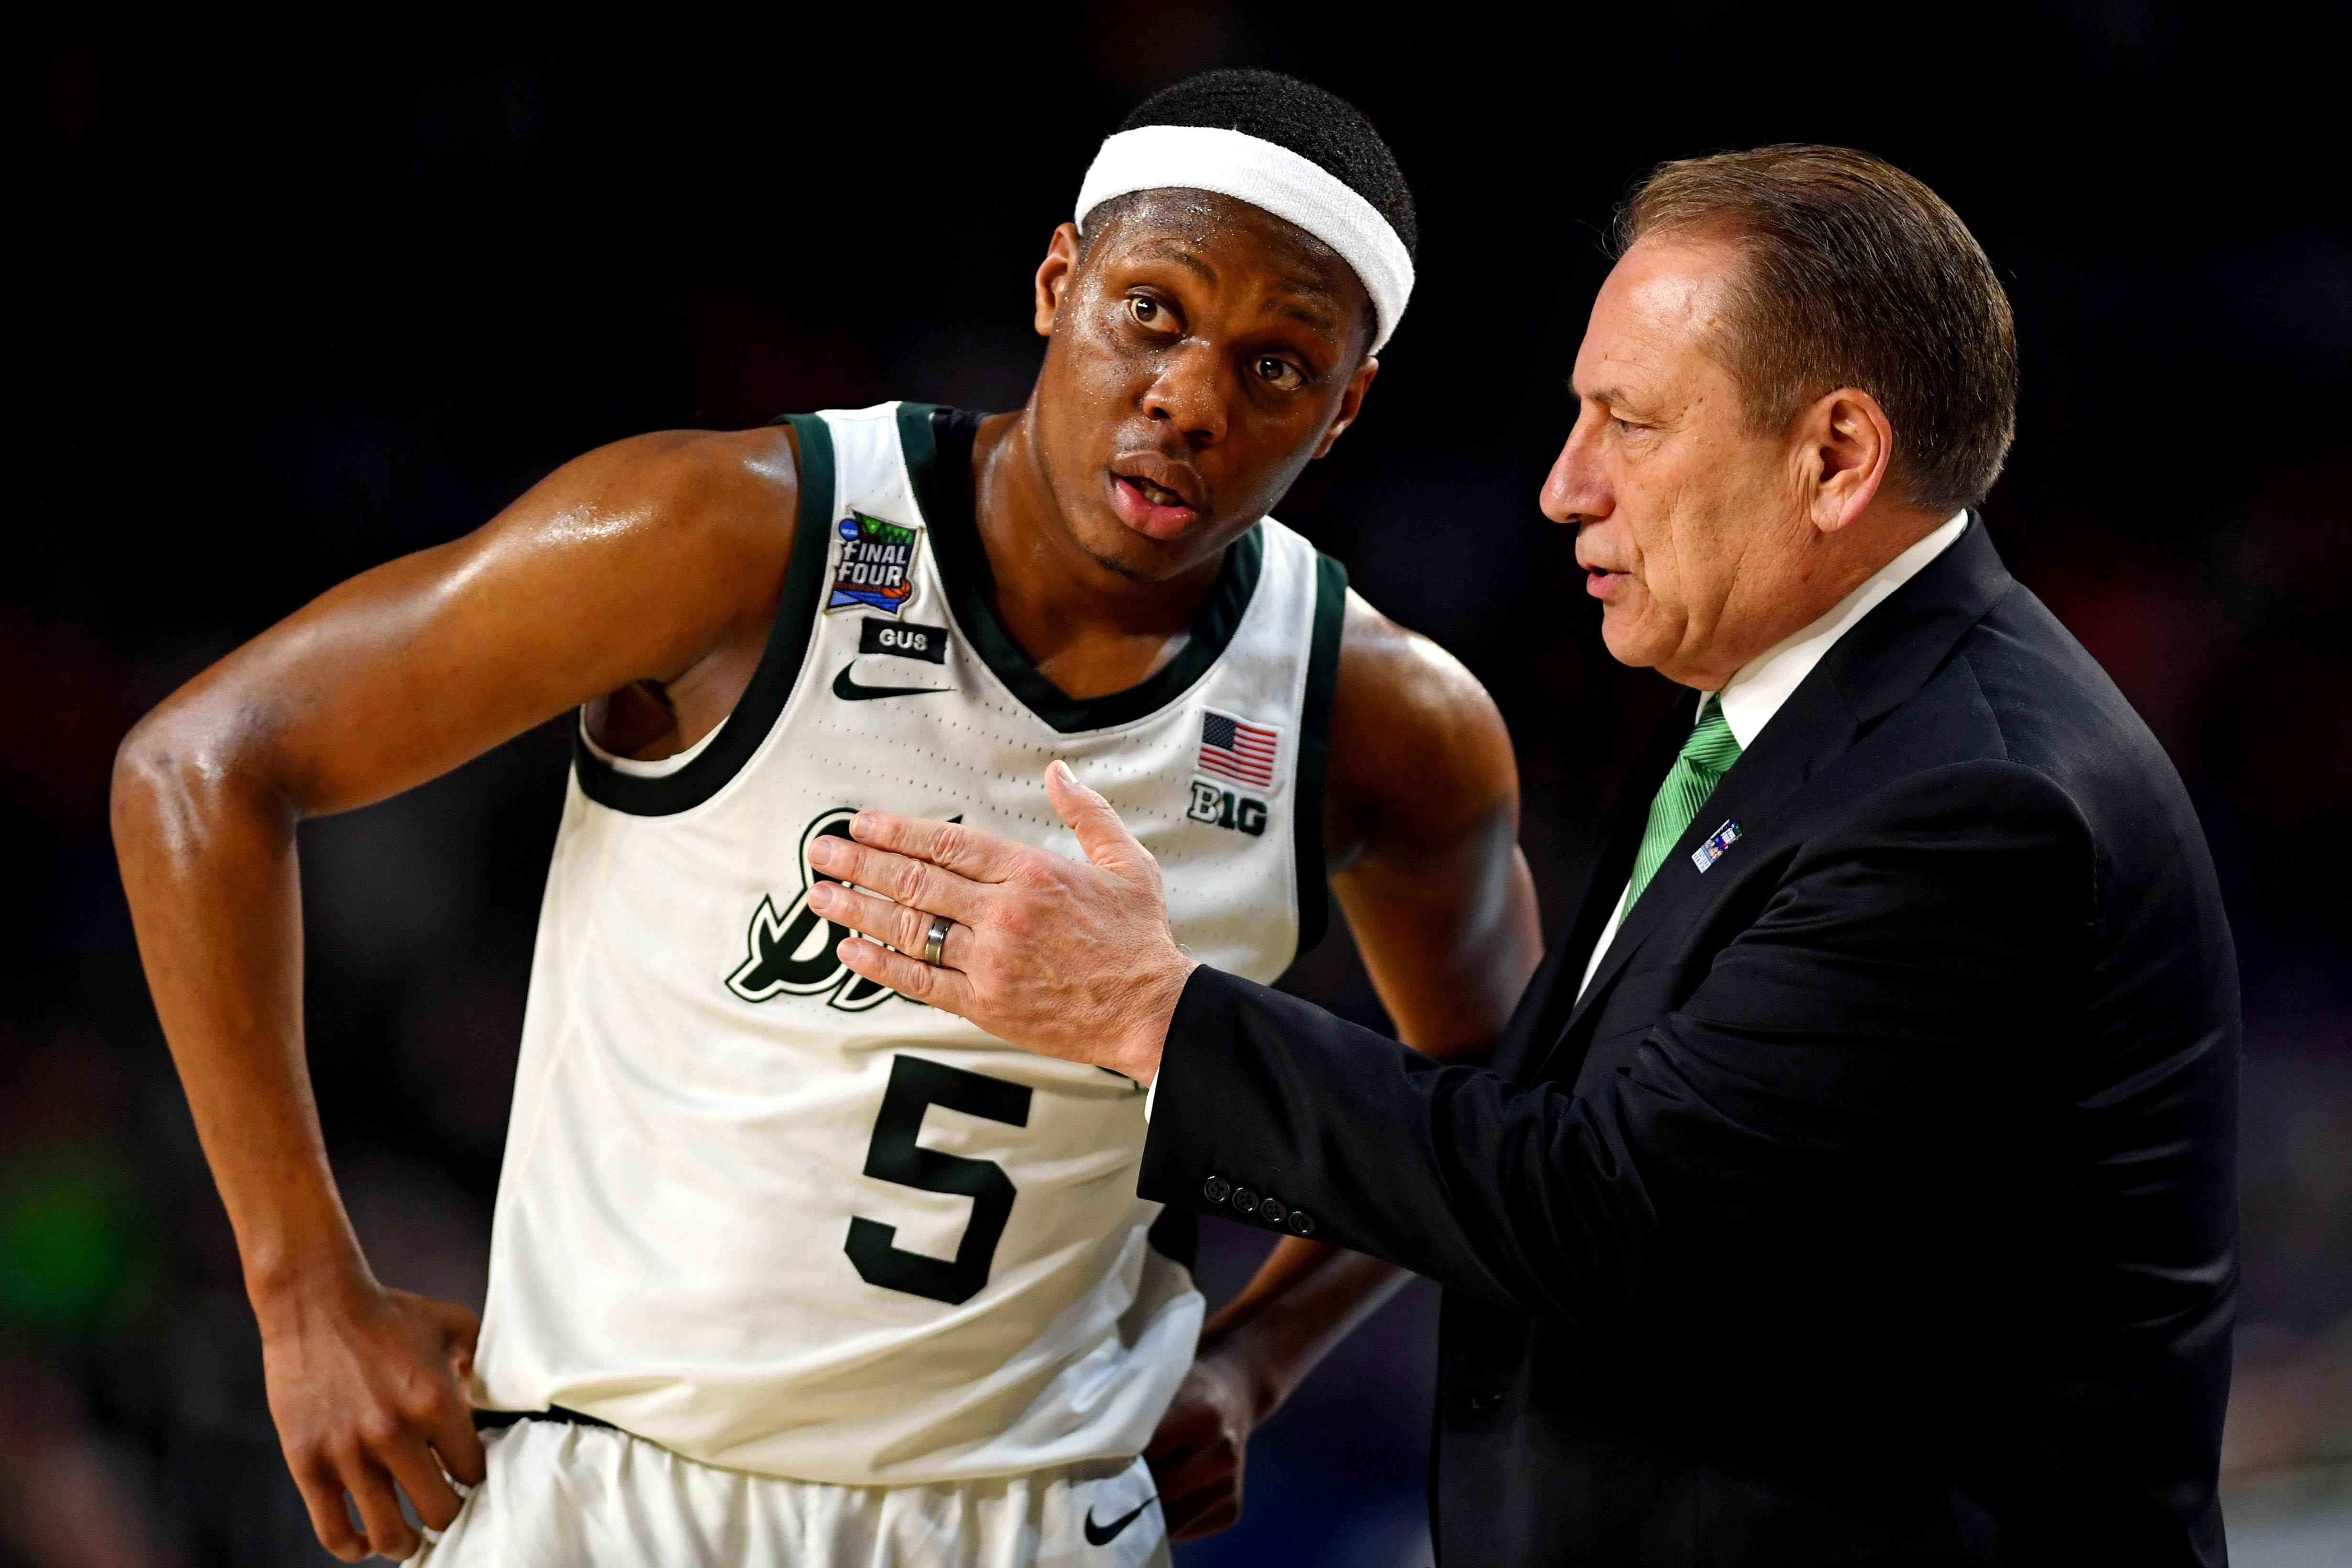 College basketball rankings: Andy Katz's Power 36 teams right now